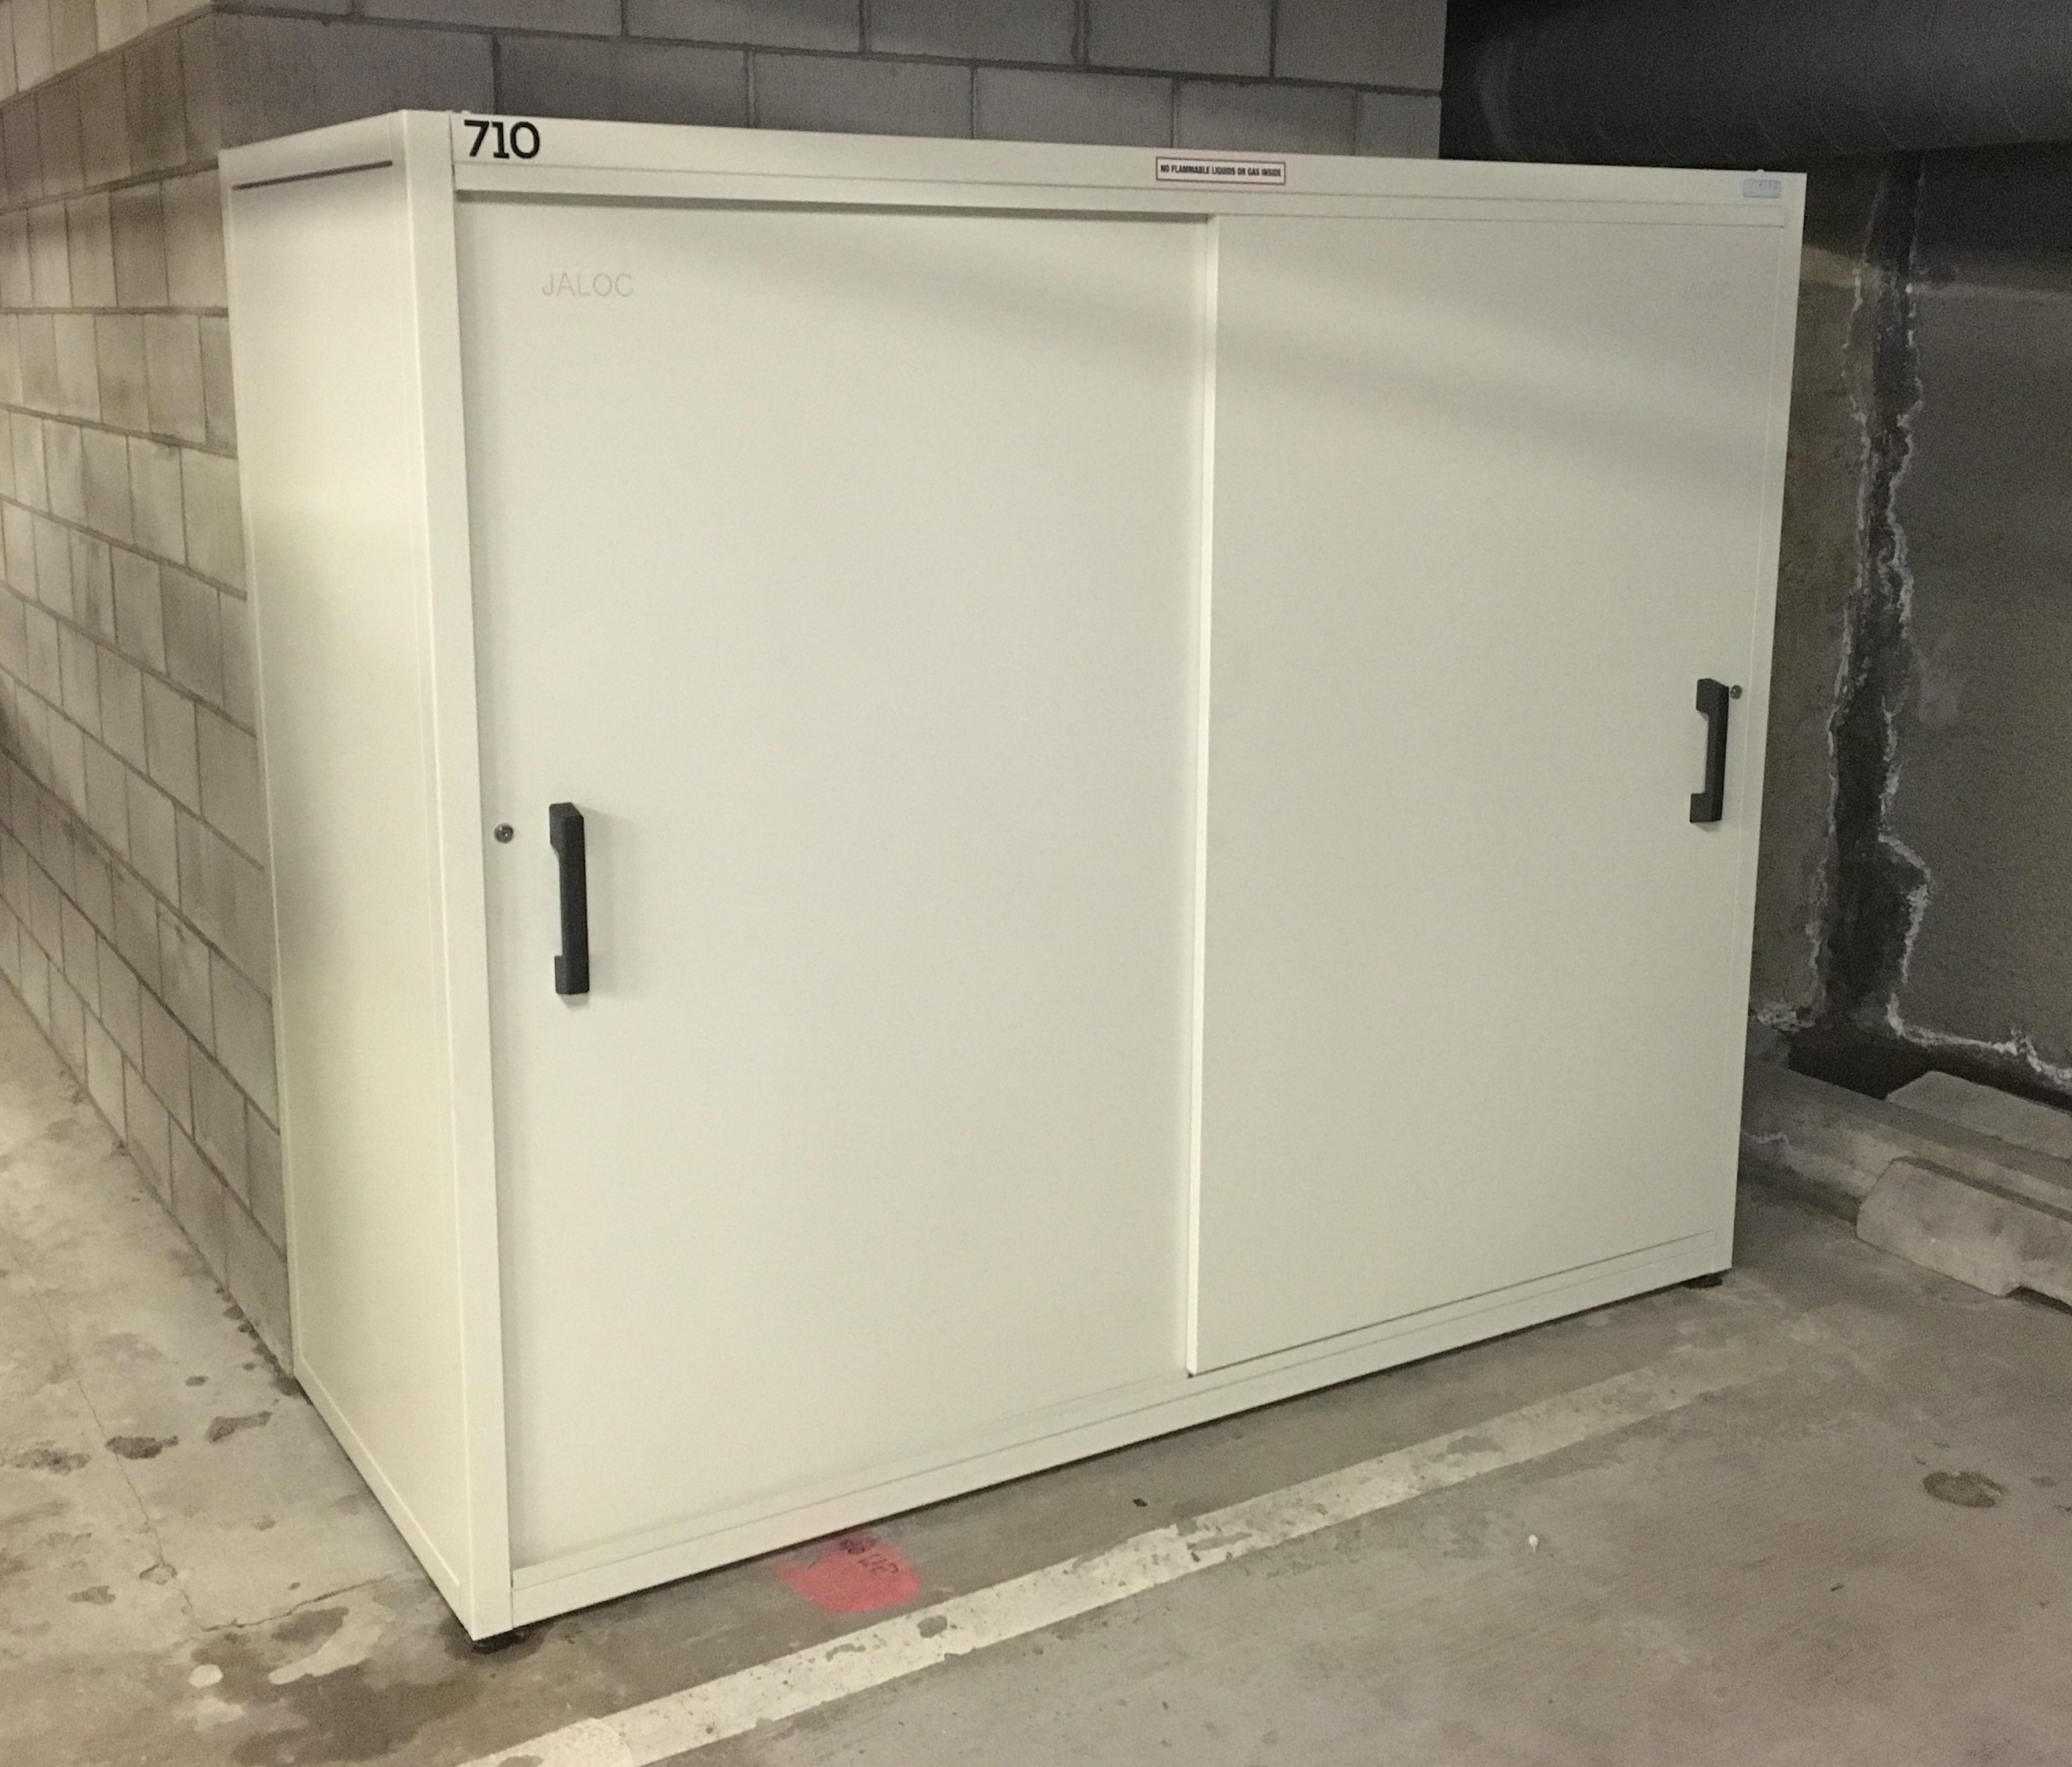 Jaloc Dual Upright Storage Locker Auckland CBD Hotel Apartment Carpark